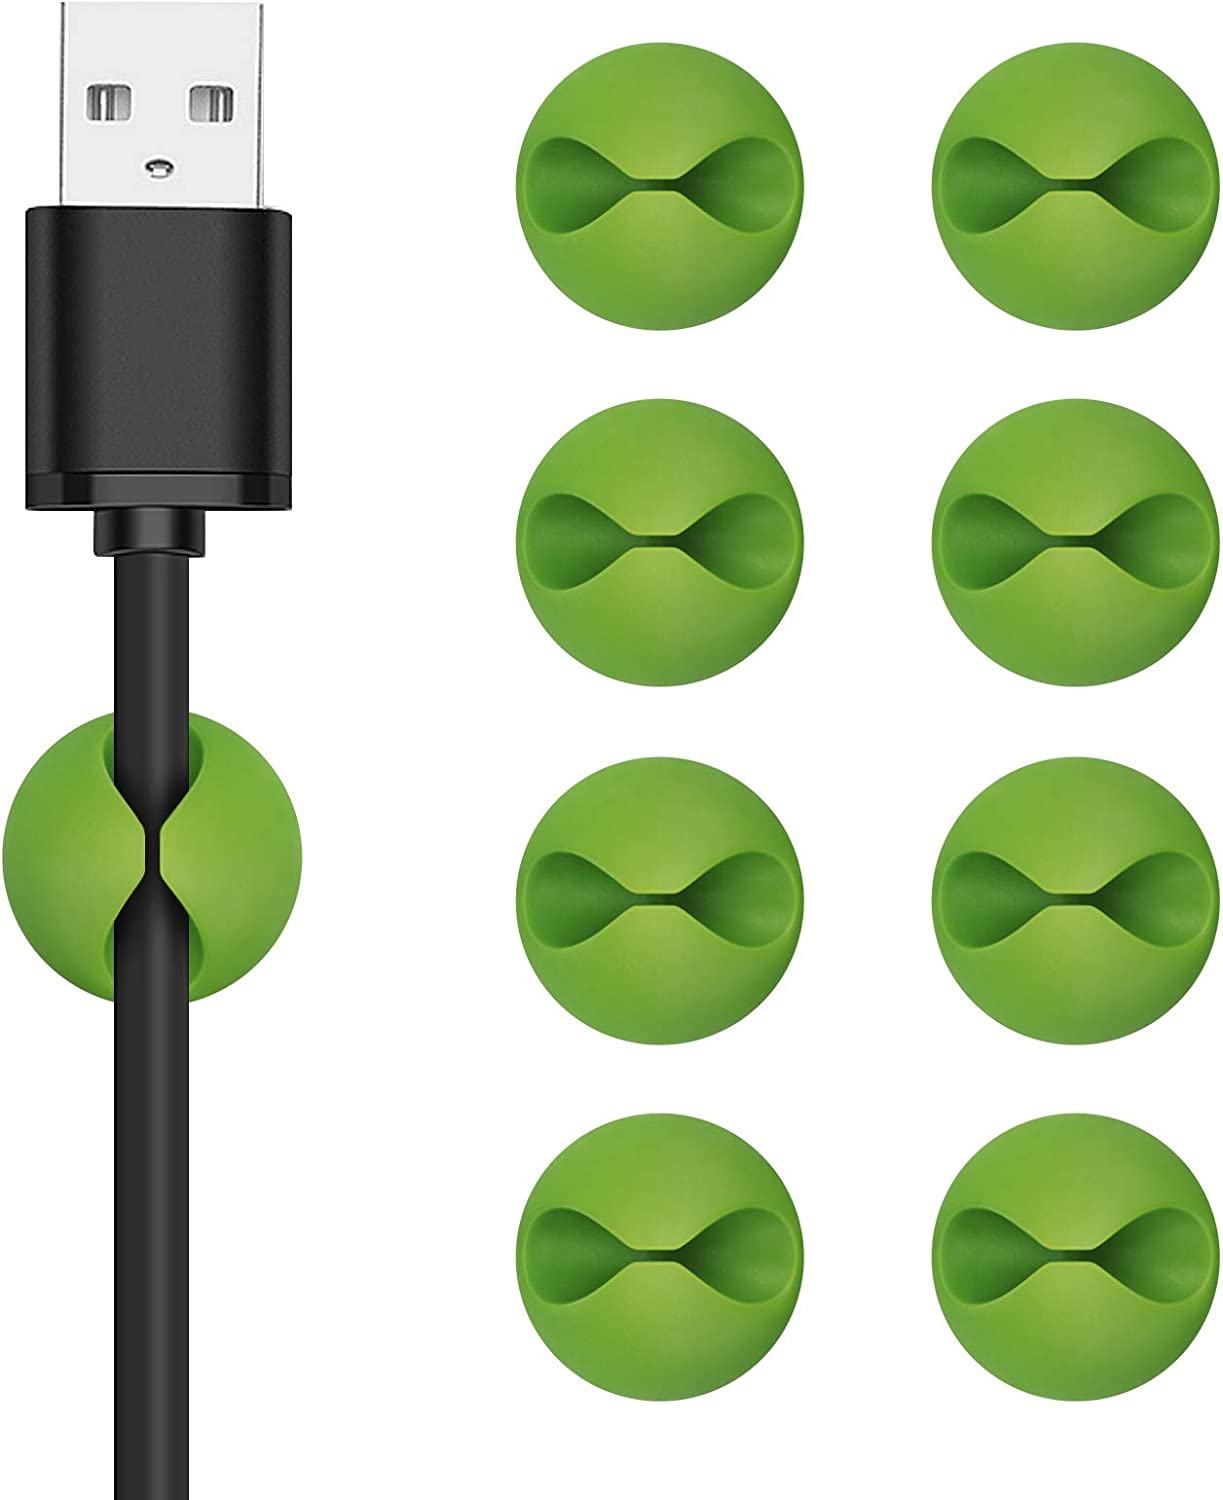 CHEFBEE 8 Pack Cable Clips, Cord Organizer Cable Management, Self Adhesive Wire Holder System, Multipurpose Wire Clips for All Your Computer, Electrical, Charging or Mouse Cord (Green)